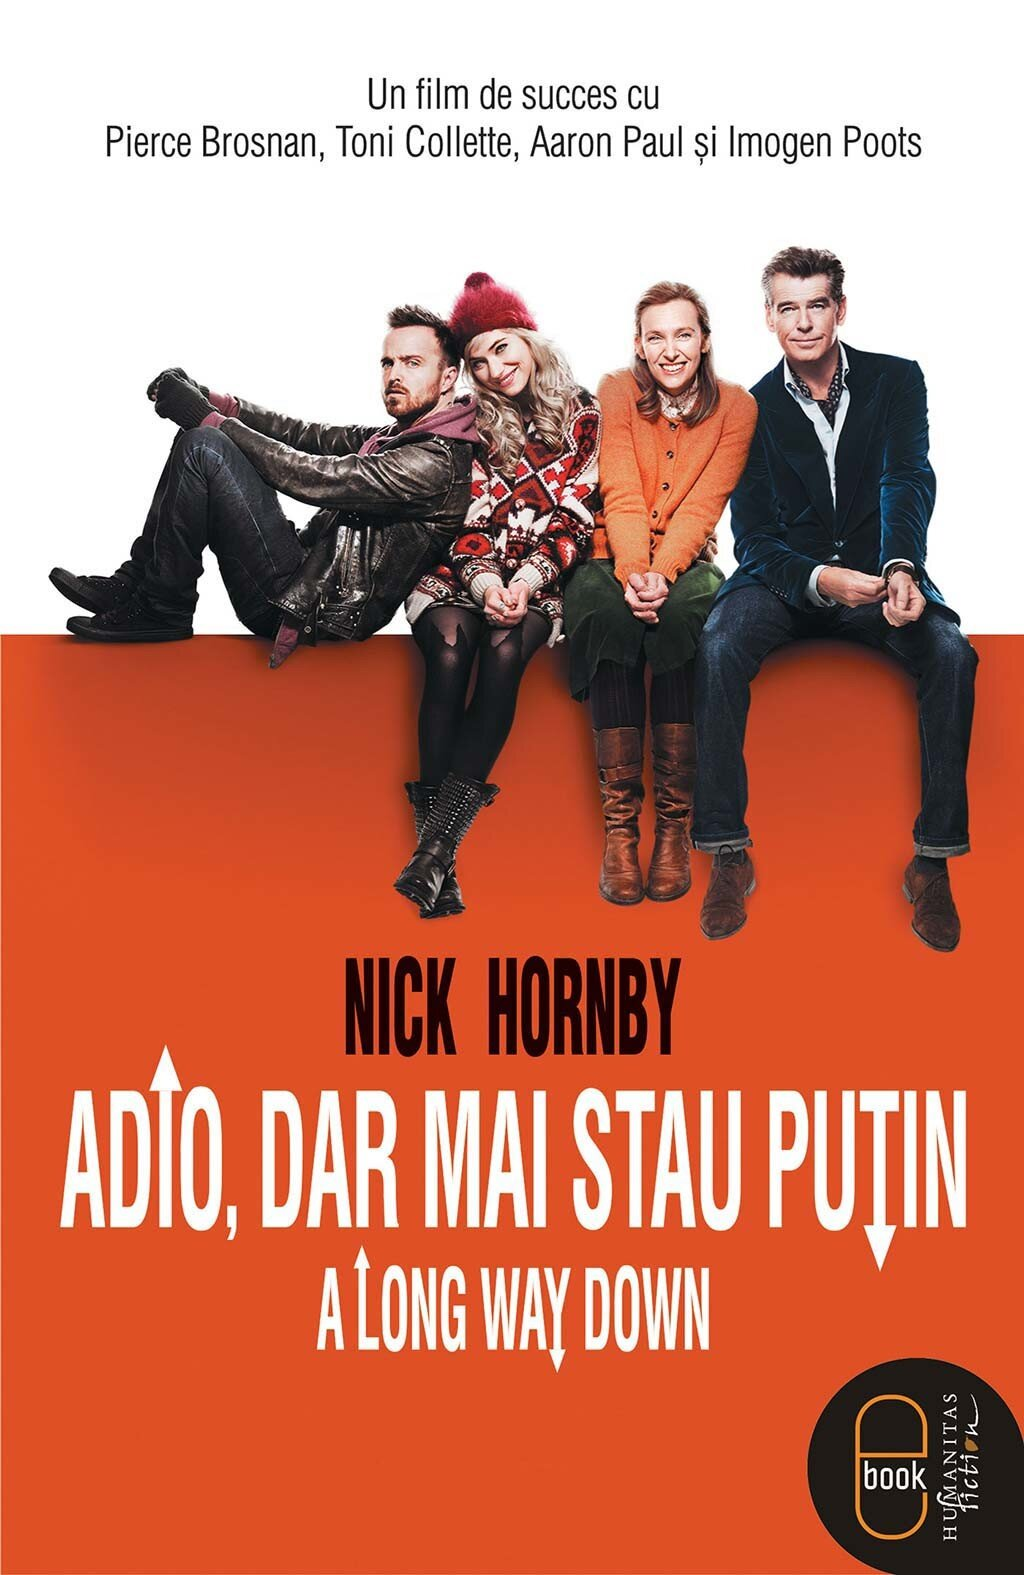 Adio, dar mai stau putin. A long way down PDF (Download eBook)